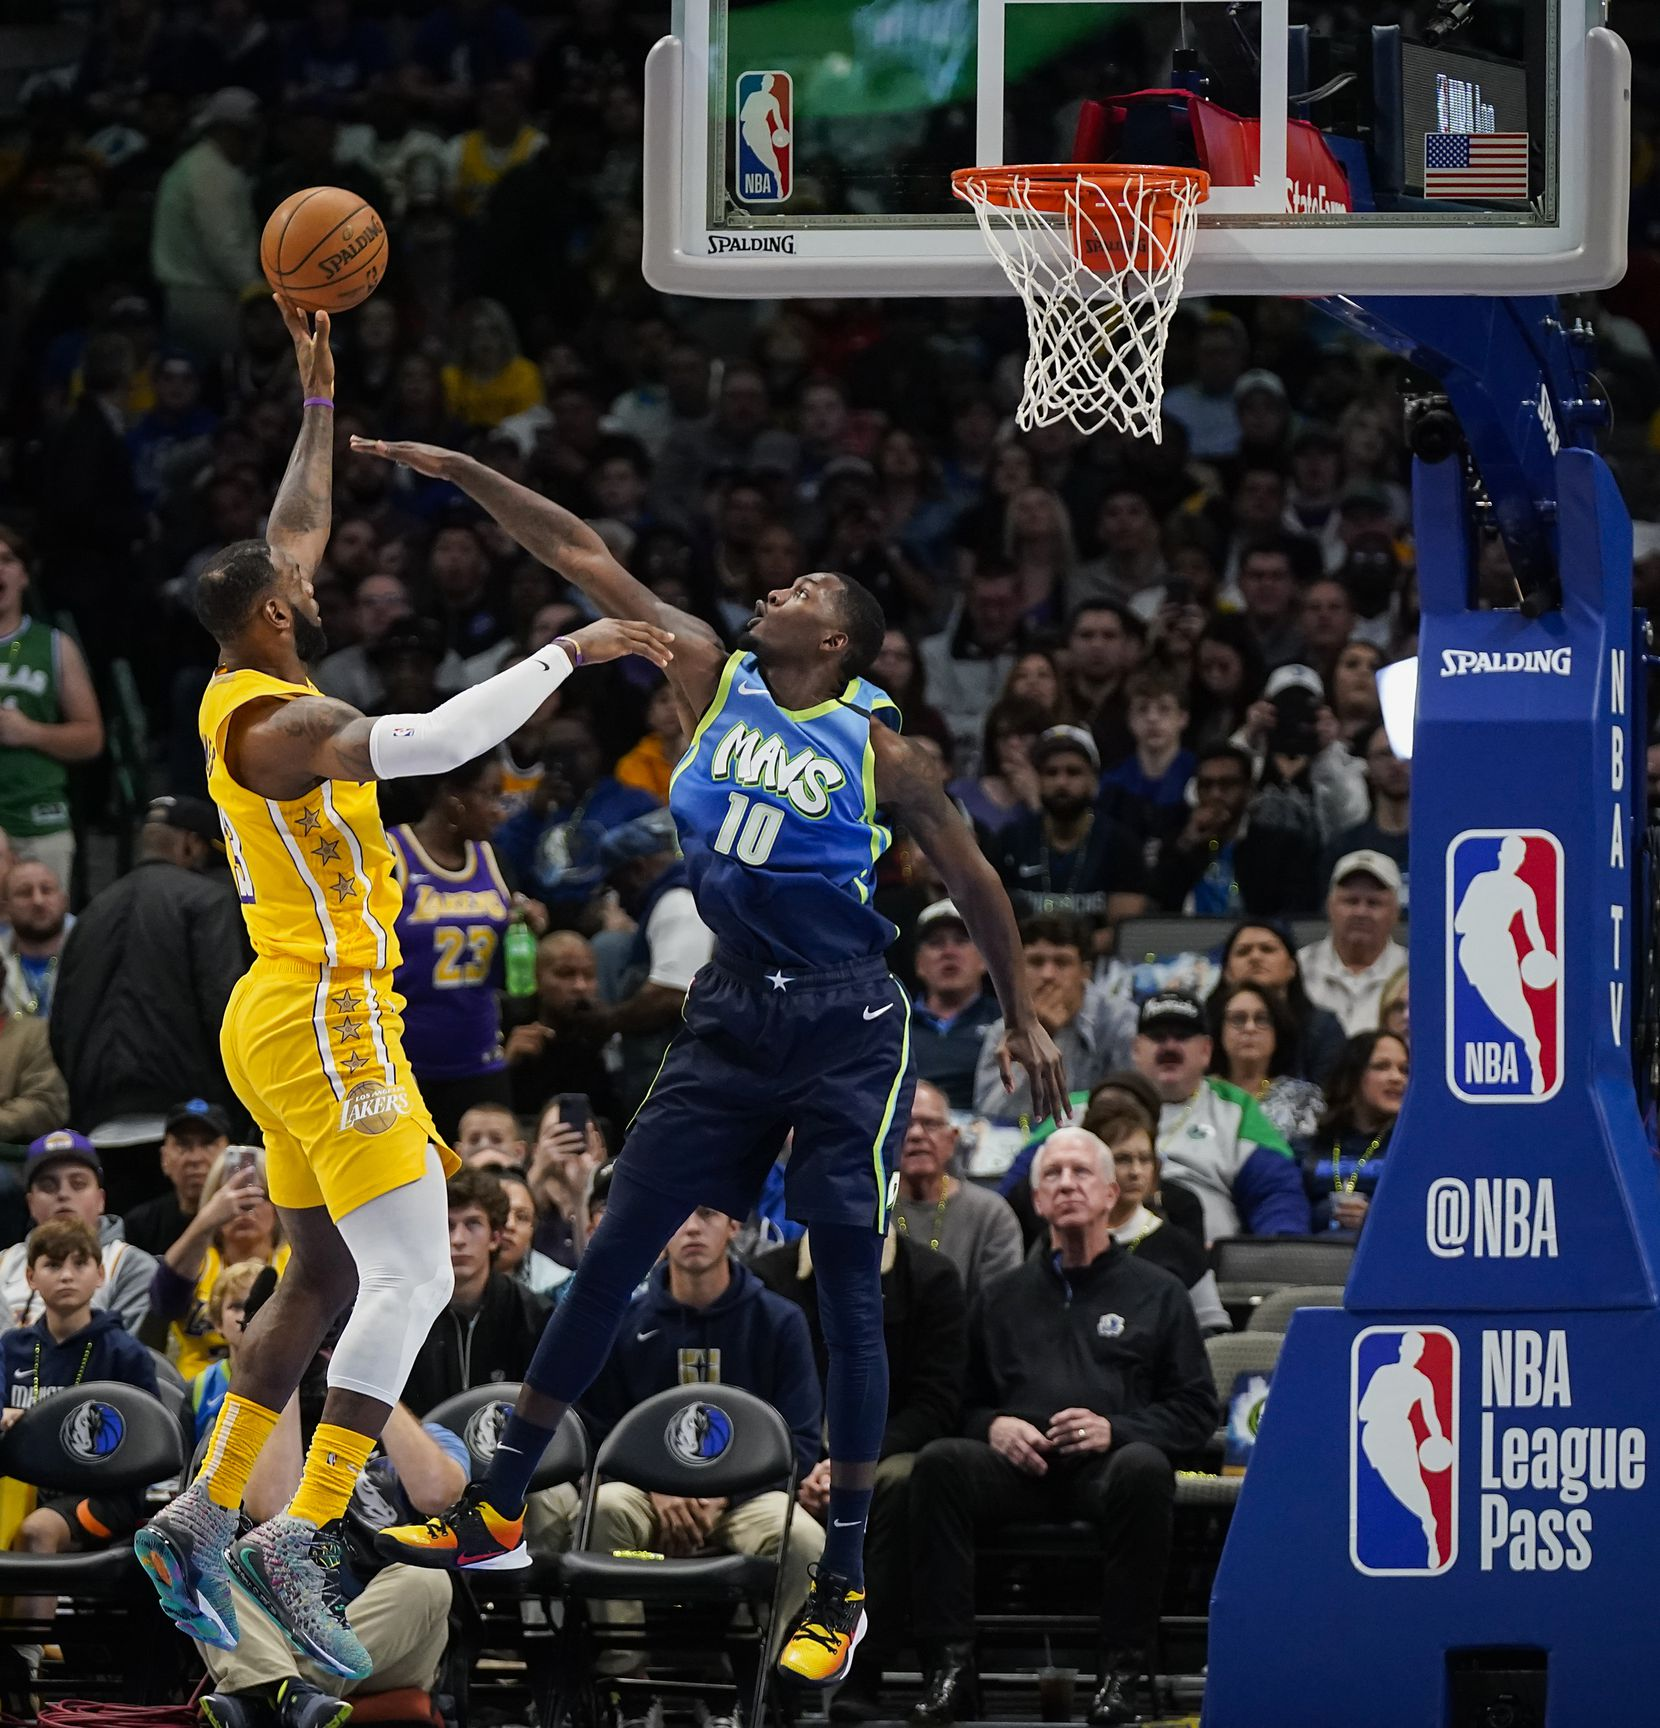 Los Angeles Lakers forward LeBron James (23) scores past Dallas Mavericks forward Dorian Finney-Smith (10) during the first half of an NBA basketball game at American Airlines Center on Friday, Jan. 10, 2020, in Dallas.